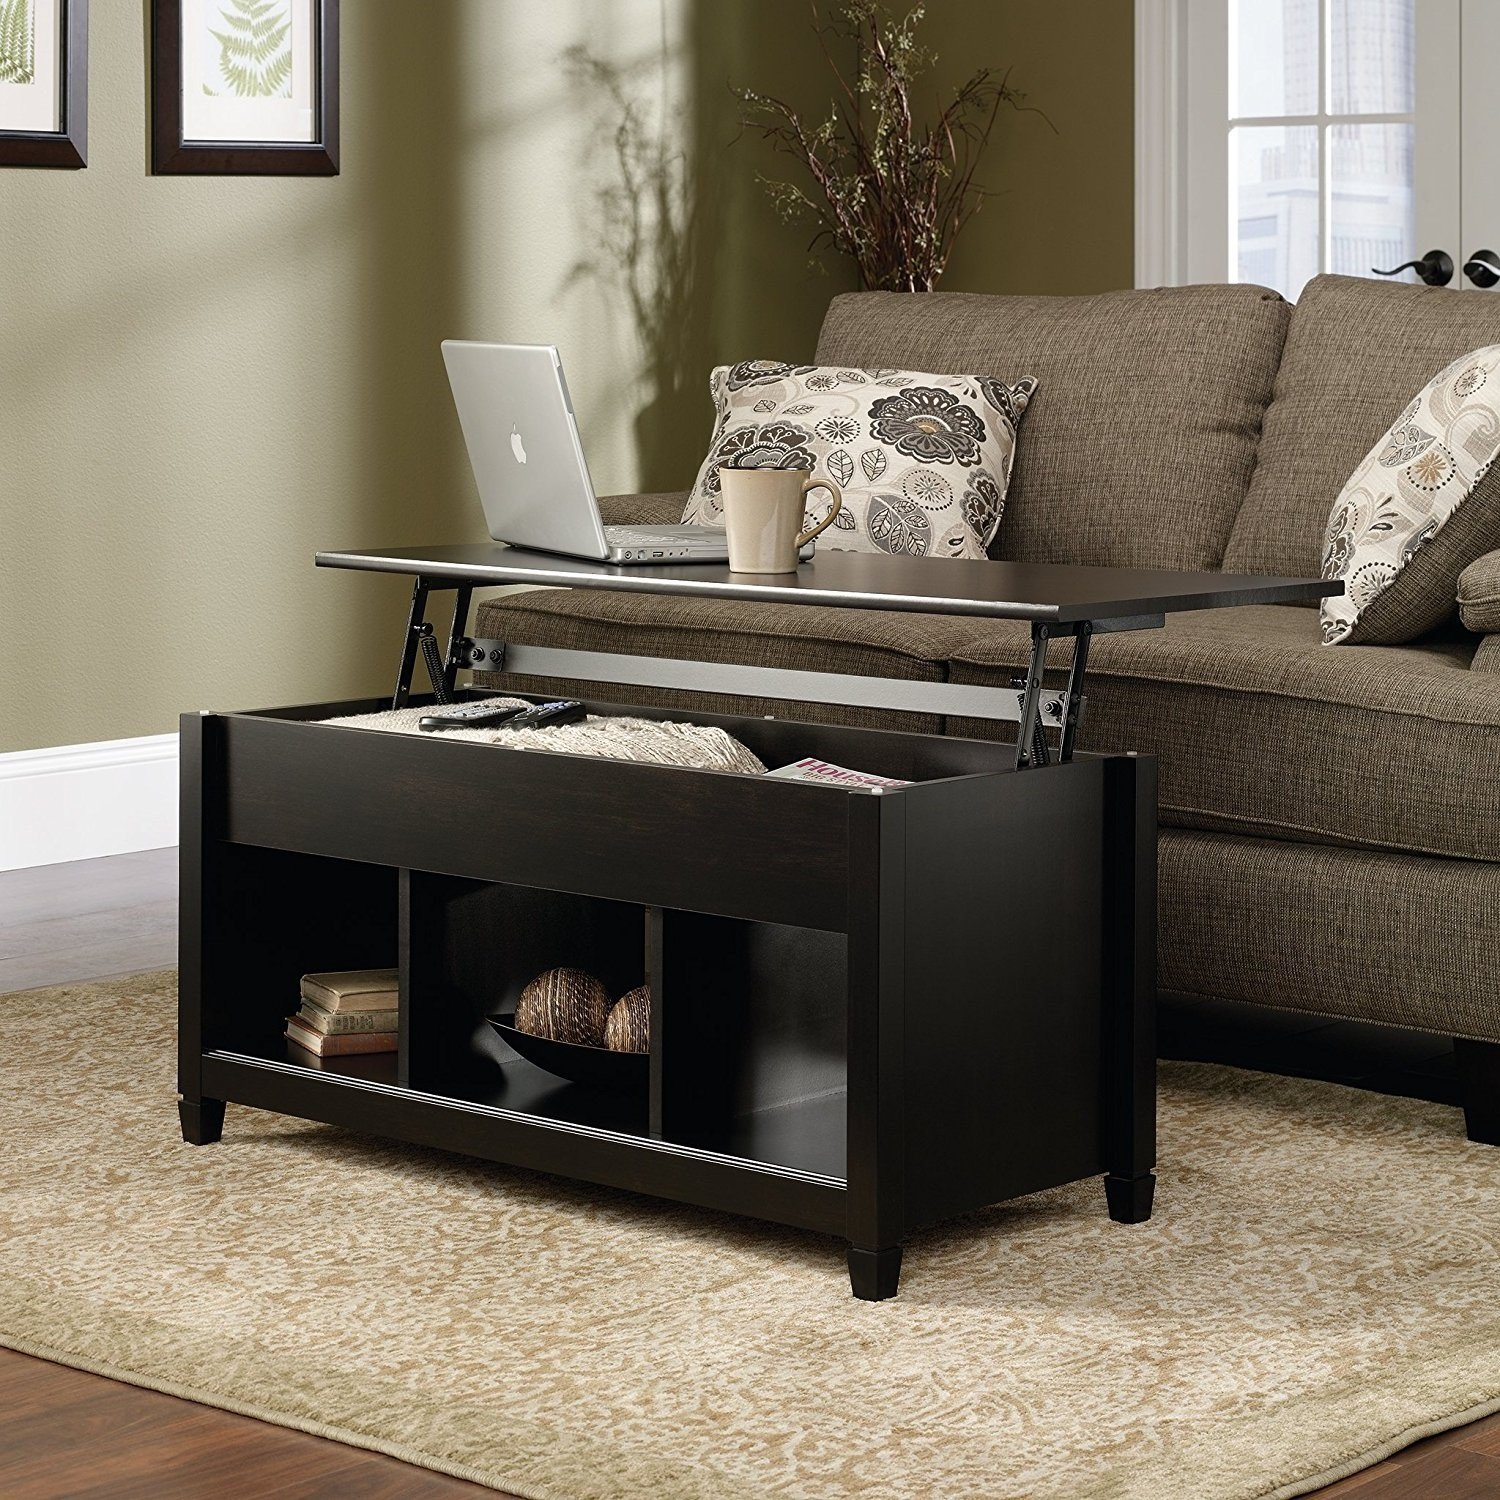 Best Quality Low Coffee Table With Hidden Lift Top and Lower Storage Compartment For Contemporary Home And Living Room (Black) by F-D-S